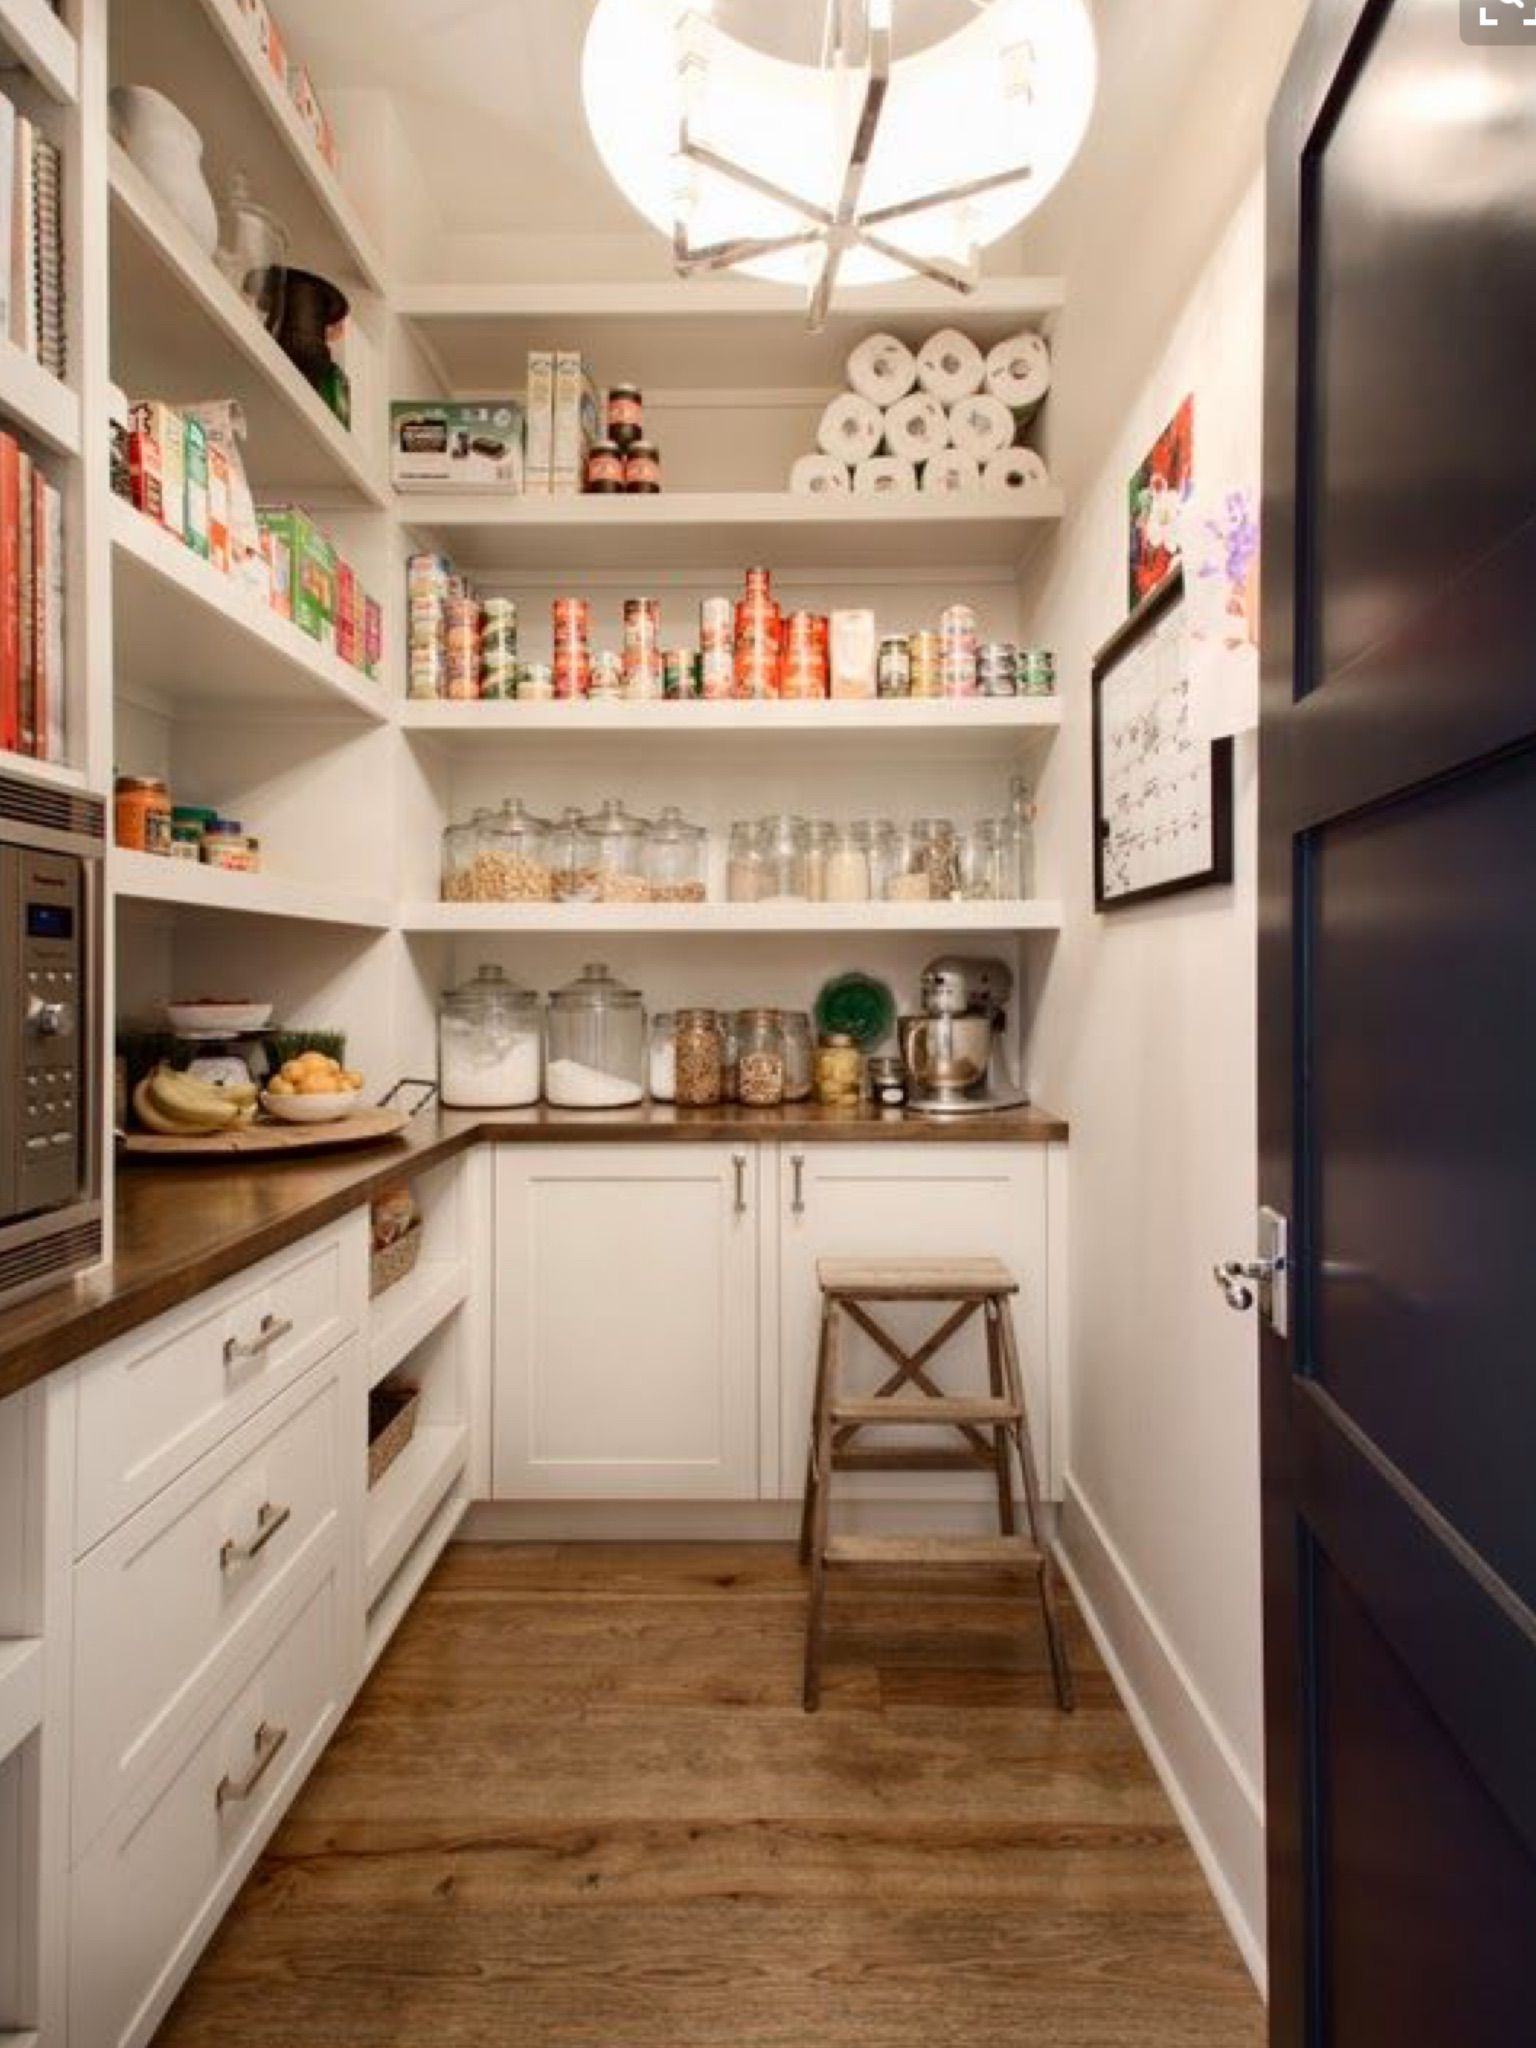 Pin By Justine On Kitchen - Pinterest - Kitchen Pantries,